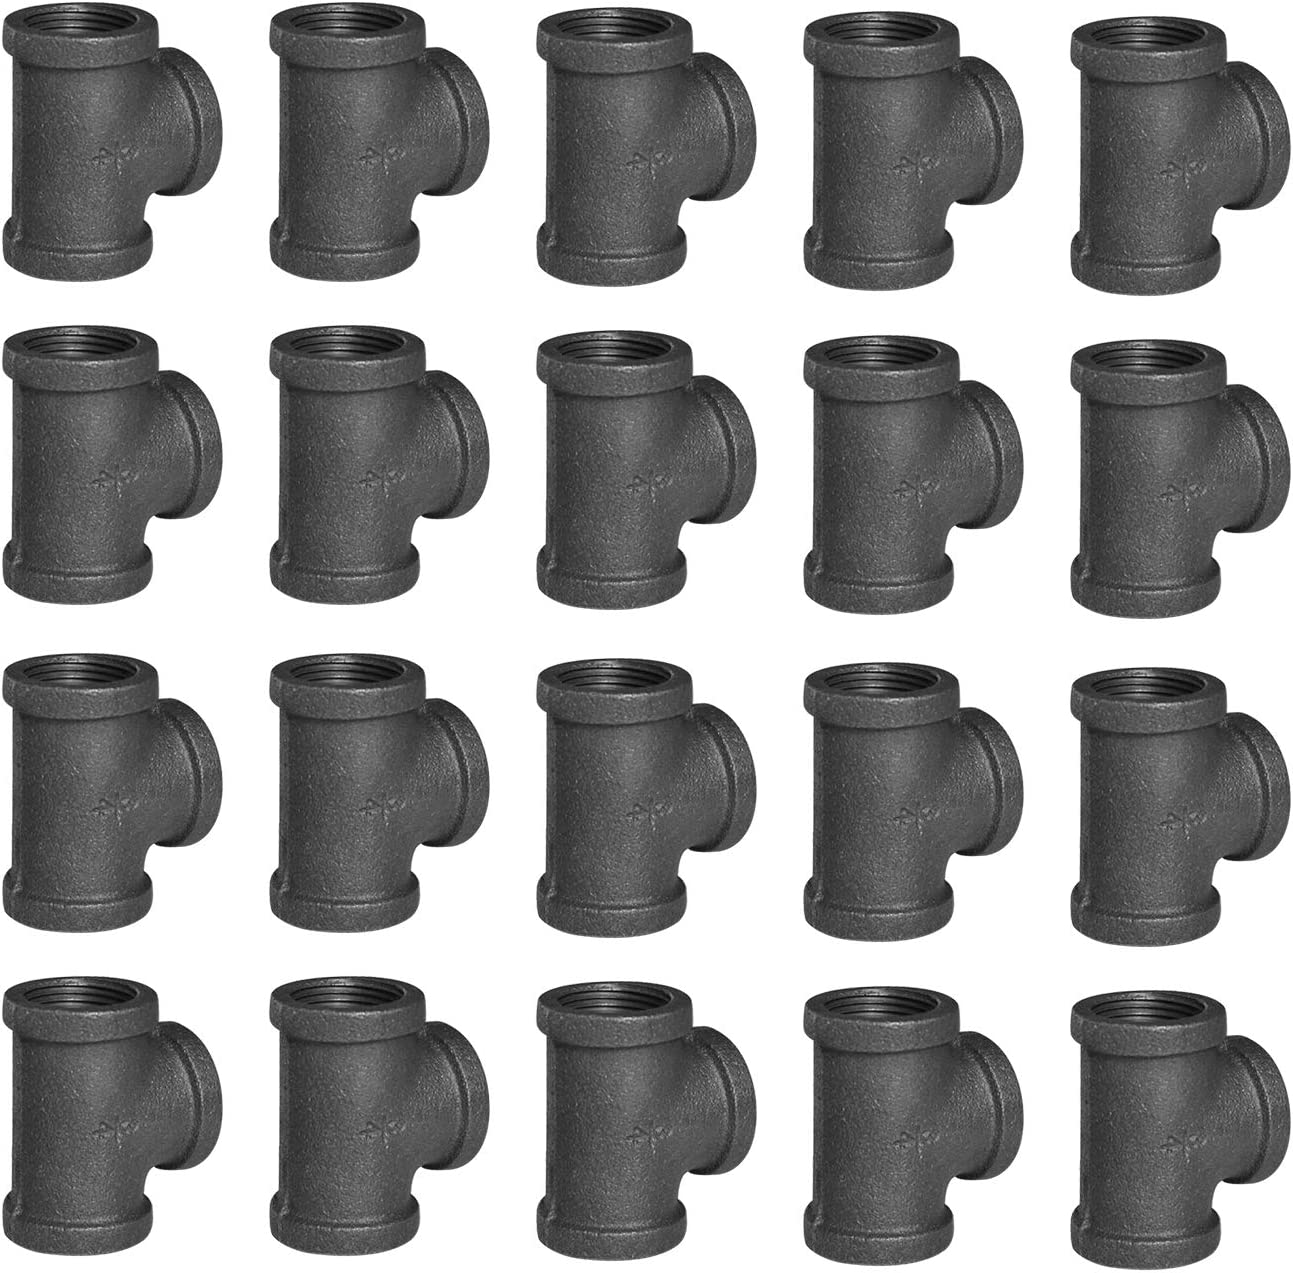 """1/2"""" Pipe Fitting Tee DN15 Threaded Cast Black Malleable Iron for Steampunk Vintage Shelf Bracket DIY Plumbing Pipe Decor Furniture (20, 1/2"""")"""